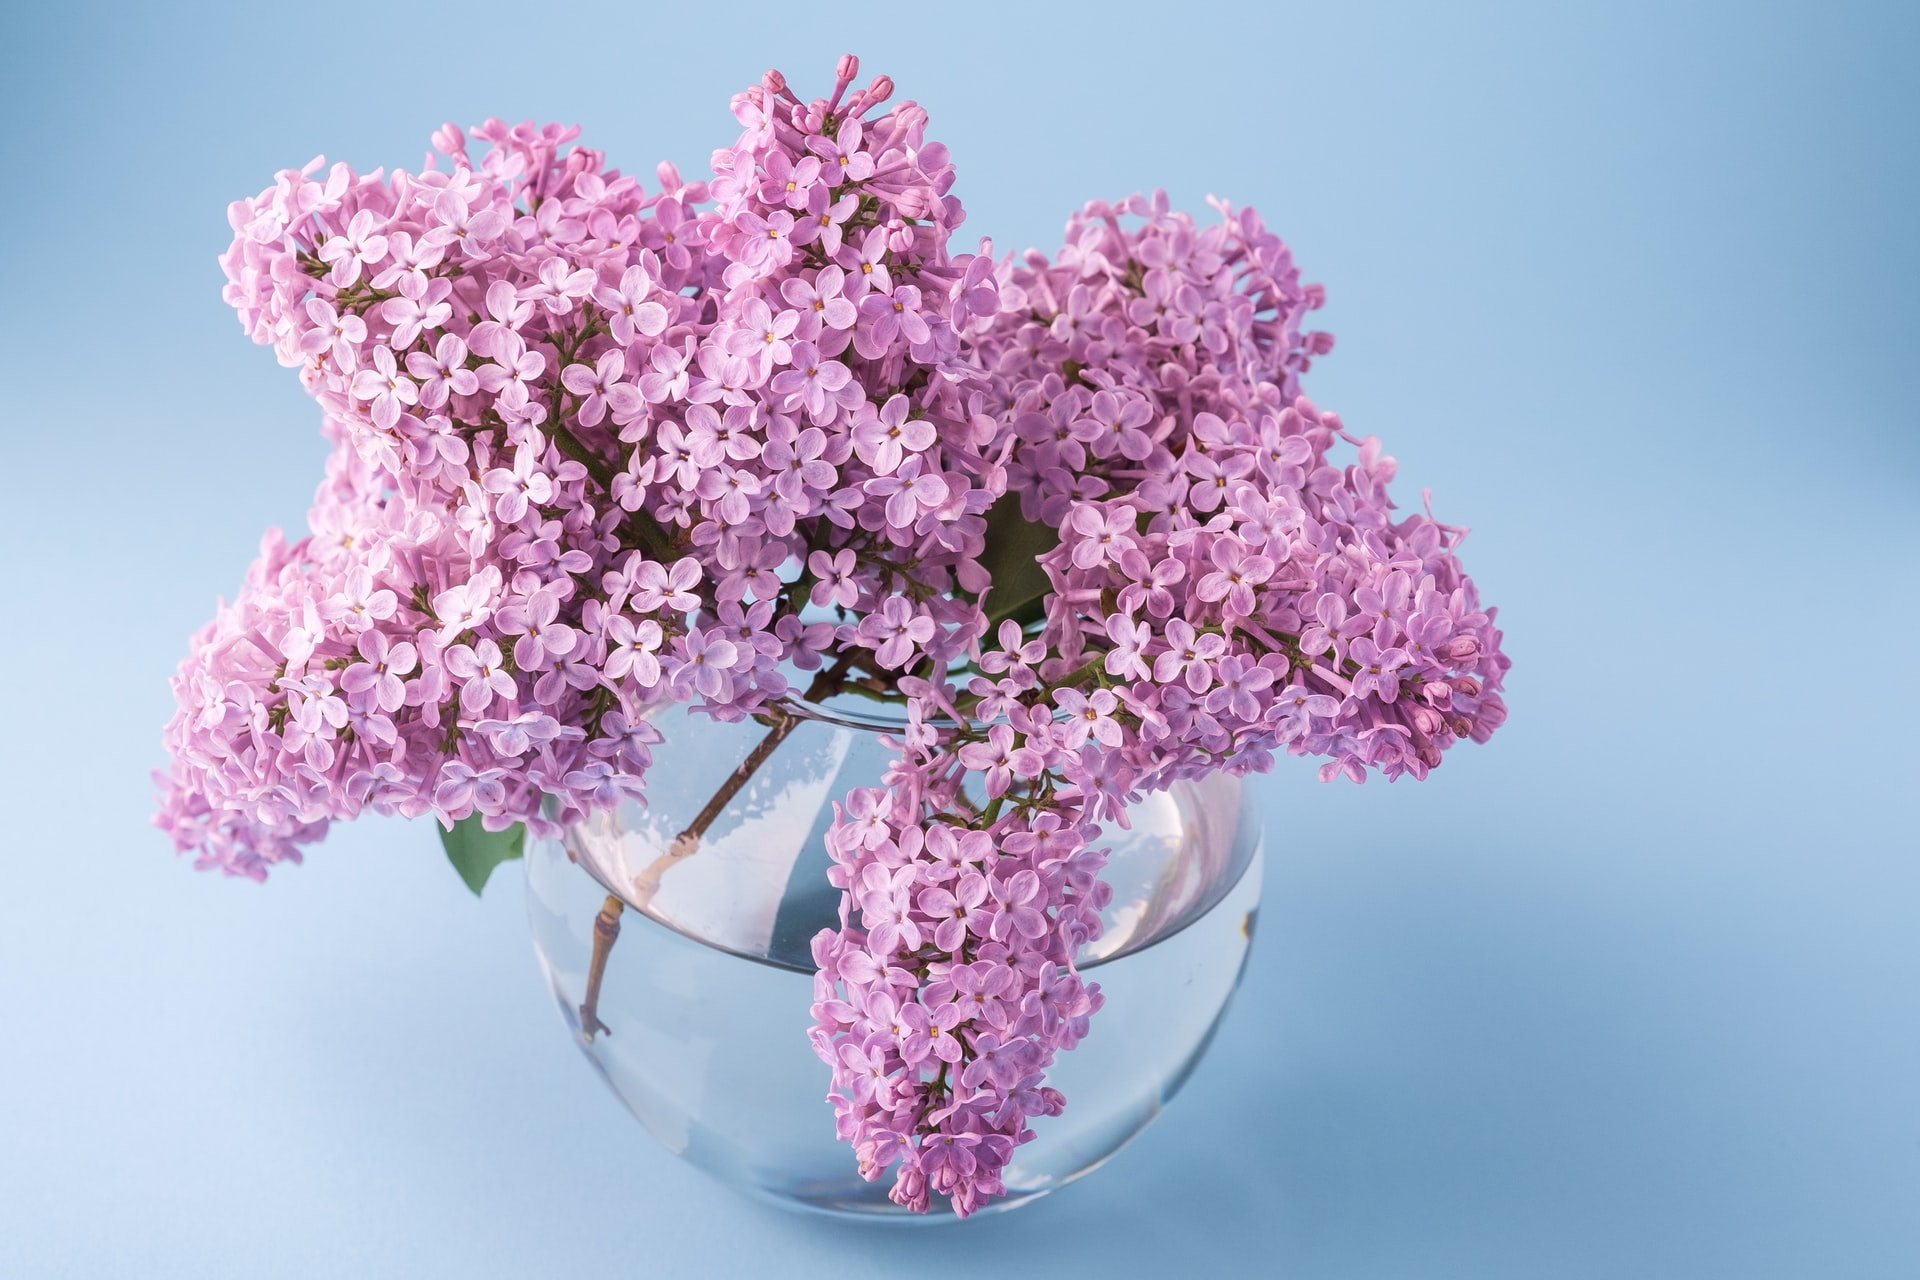 Pink, lilac flowers in a clear vase, on a blue-ish background.